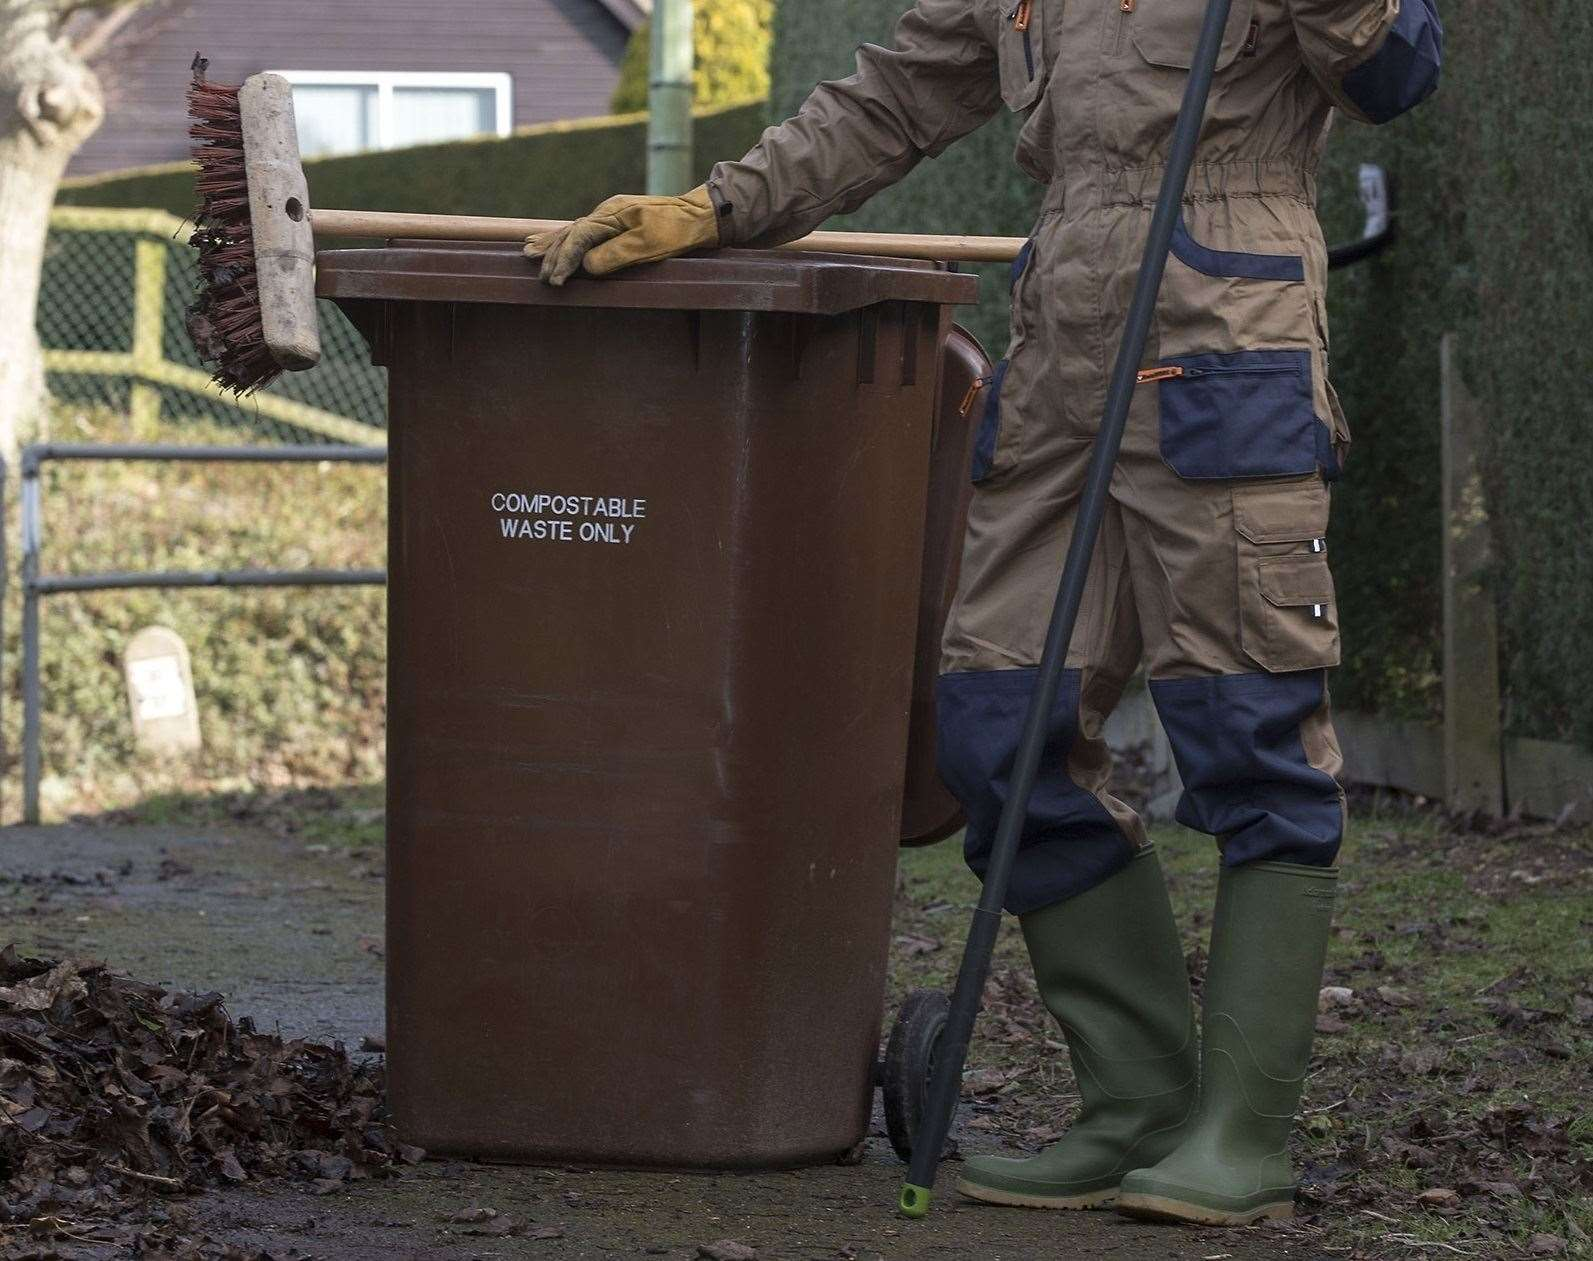 Brown bin collections are being suspended across the Newmarket area